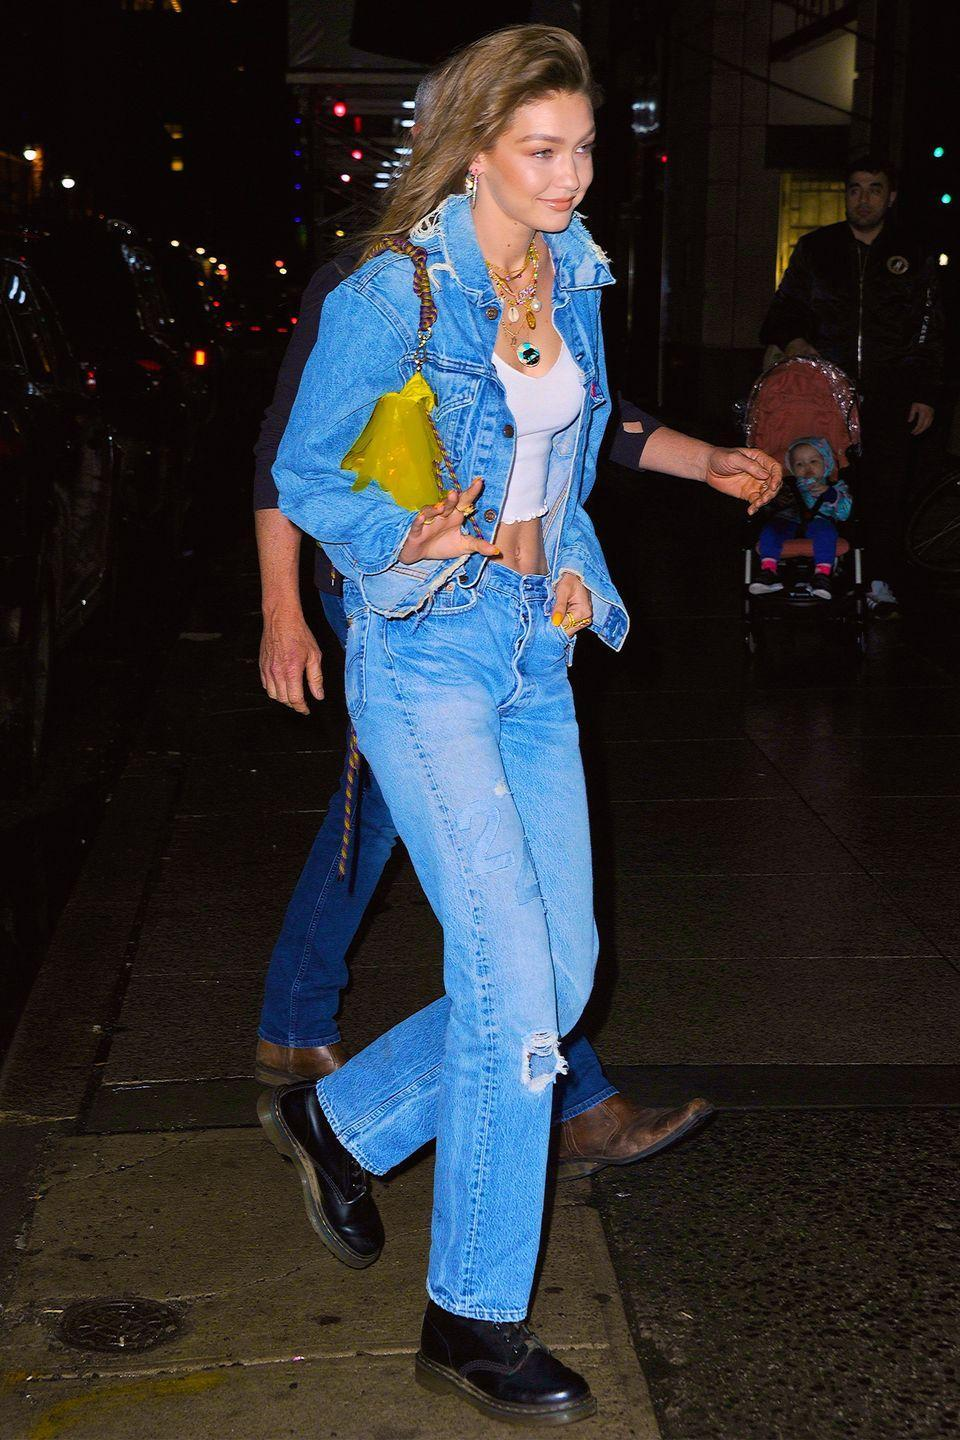 """<p>In a denim jacket, straight-leg jeans, white tank top, <a href=""""https://www.urbanoutfitters.com/shop/dr-martens-1460-smooth?adpos=1o2&cm_mmc=SEM-_-Google-_-PLA-_-383201569328_brand_urban_outfitters_x_dr_martens_product_type_womens_product_type&color=001&creative=209973910023&device=c&gclid=CjwKCAjw7_rlBRBaEiwAc23rhsQR6bzwNch2kiYqSe9WI8OMxmUpwDmu0tV6Cgnc17vZ5lVvZKO7ZxoCKtMQAvD_BwE&inventoryCountry=US&matchtype=&mrkgadid=3252904465&mrkgcl=671&network=g&product_id=33052739&utm_campaign=PLA"""" rel=""""nofollow noopener"""" target=""""_blank"""" data-ylk=""""slk:Dr. Martens boots"""" class=""""link rapid-noclick-resp"""">Dr. Martens boots</a>, layered necklaces (one of which is by <a href=""""https://www.mercii.com/products/taurus"""" rel=""""nofollow noopener"""" target=""""_blank"""" data-ylk=""""slk:Mercii"""" class=""""link rapid-noclick-resp"""">Mercii</a>), and a yellow tarnsparent bag while arriving to her birthday party in NYC. </p>"""